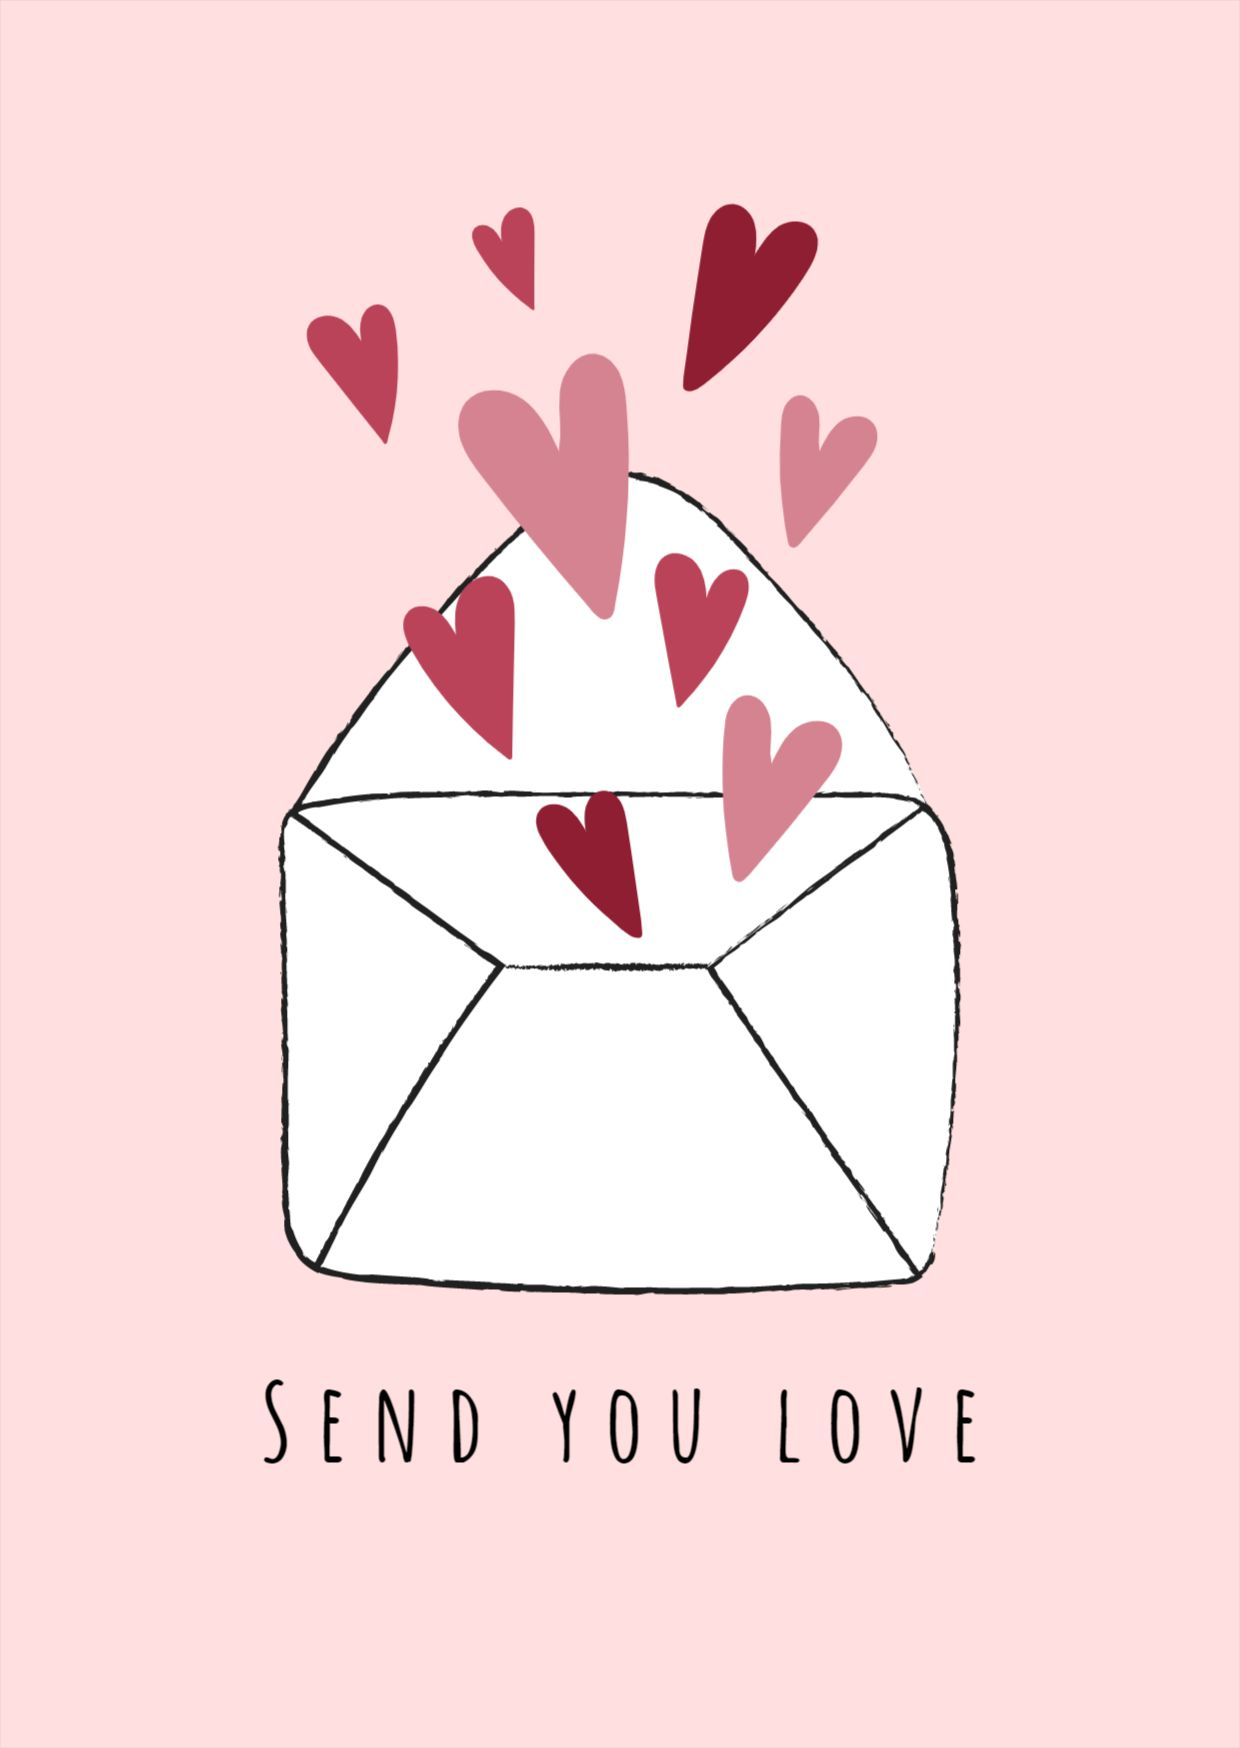 Sending Love Valentines Day Greeting Card Post Template